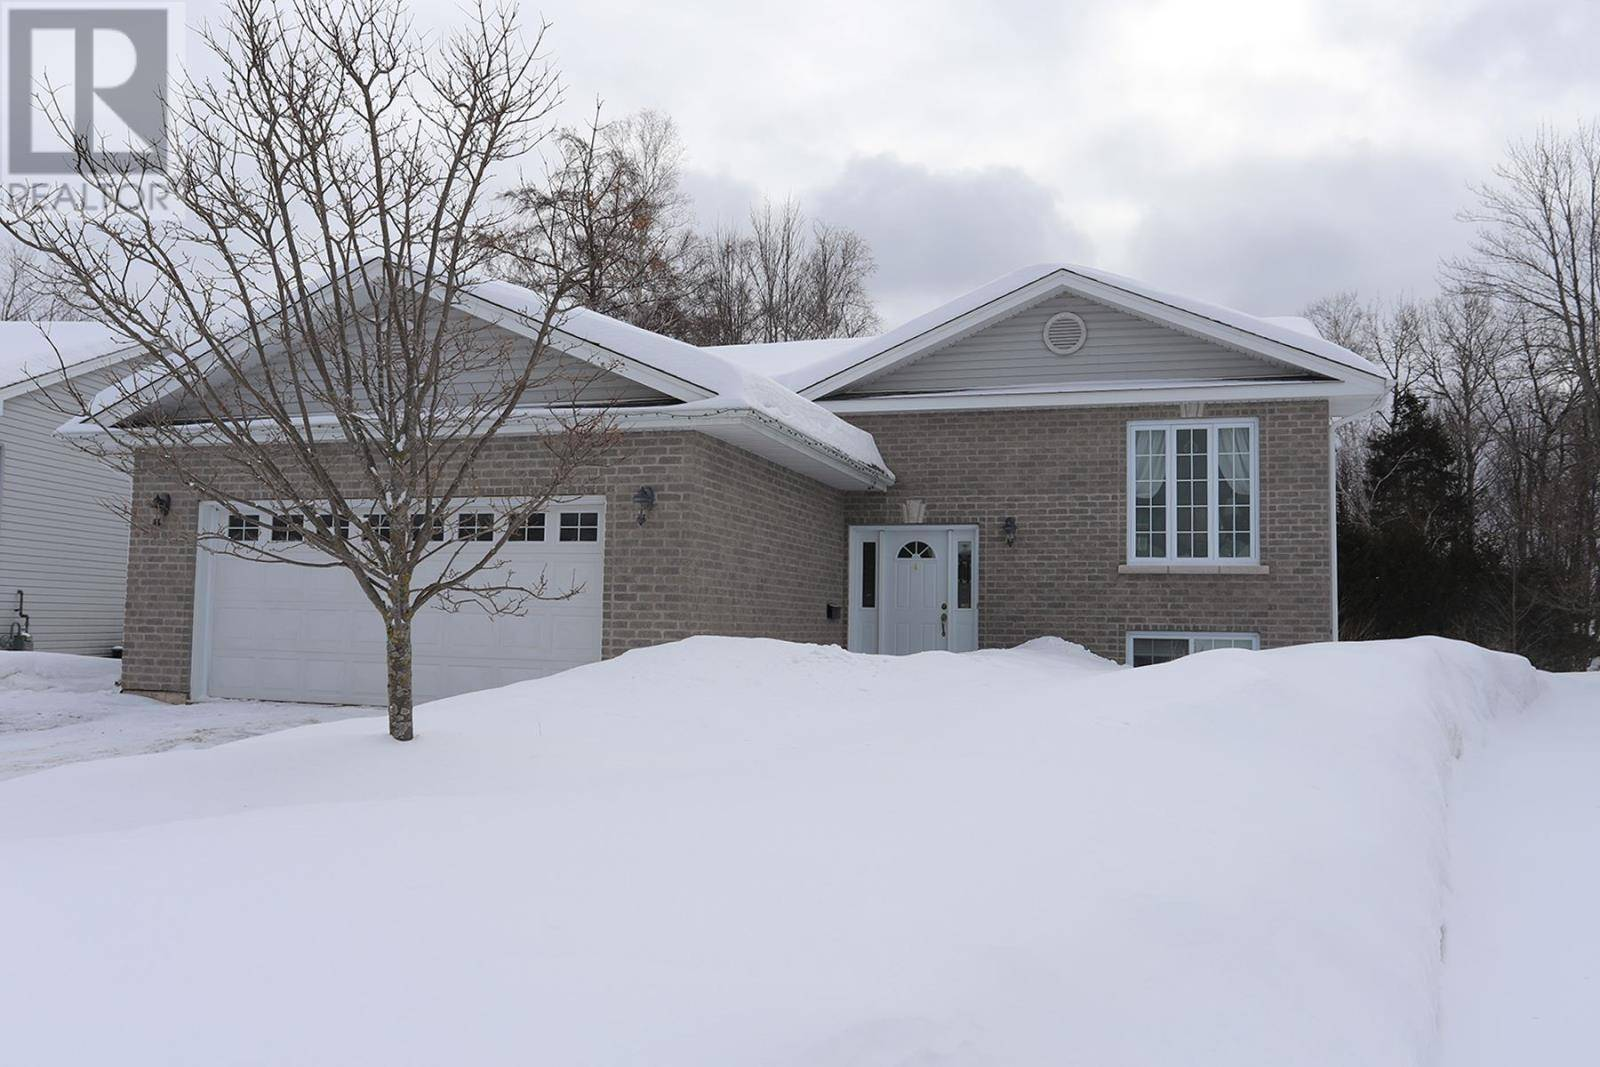 House for sale at 19 Parkinworth Pl Sault Ste. Marie Ontario - MLS: SM127967